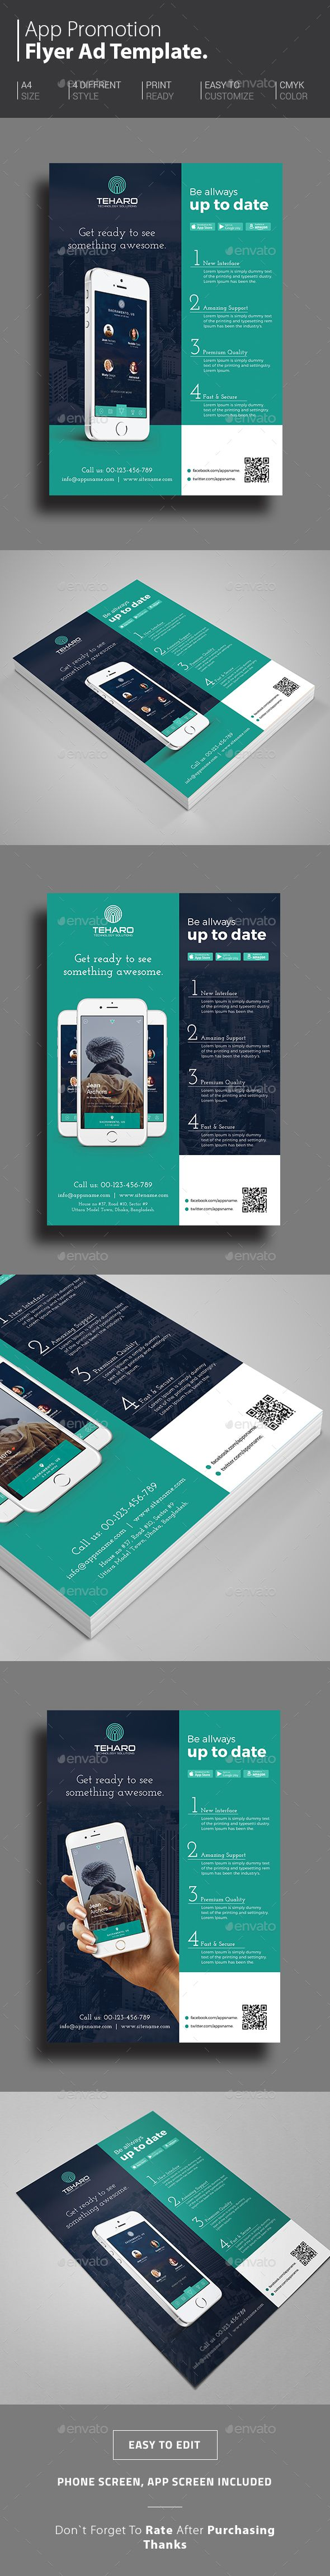 Poster design app - App Promotional Flyer